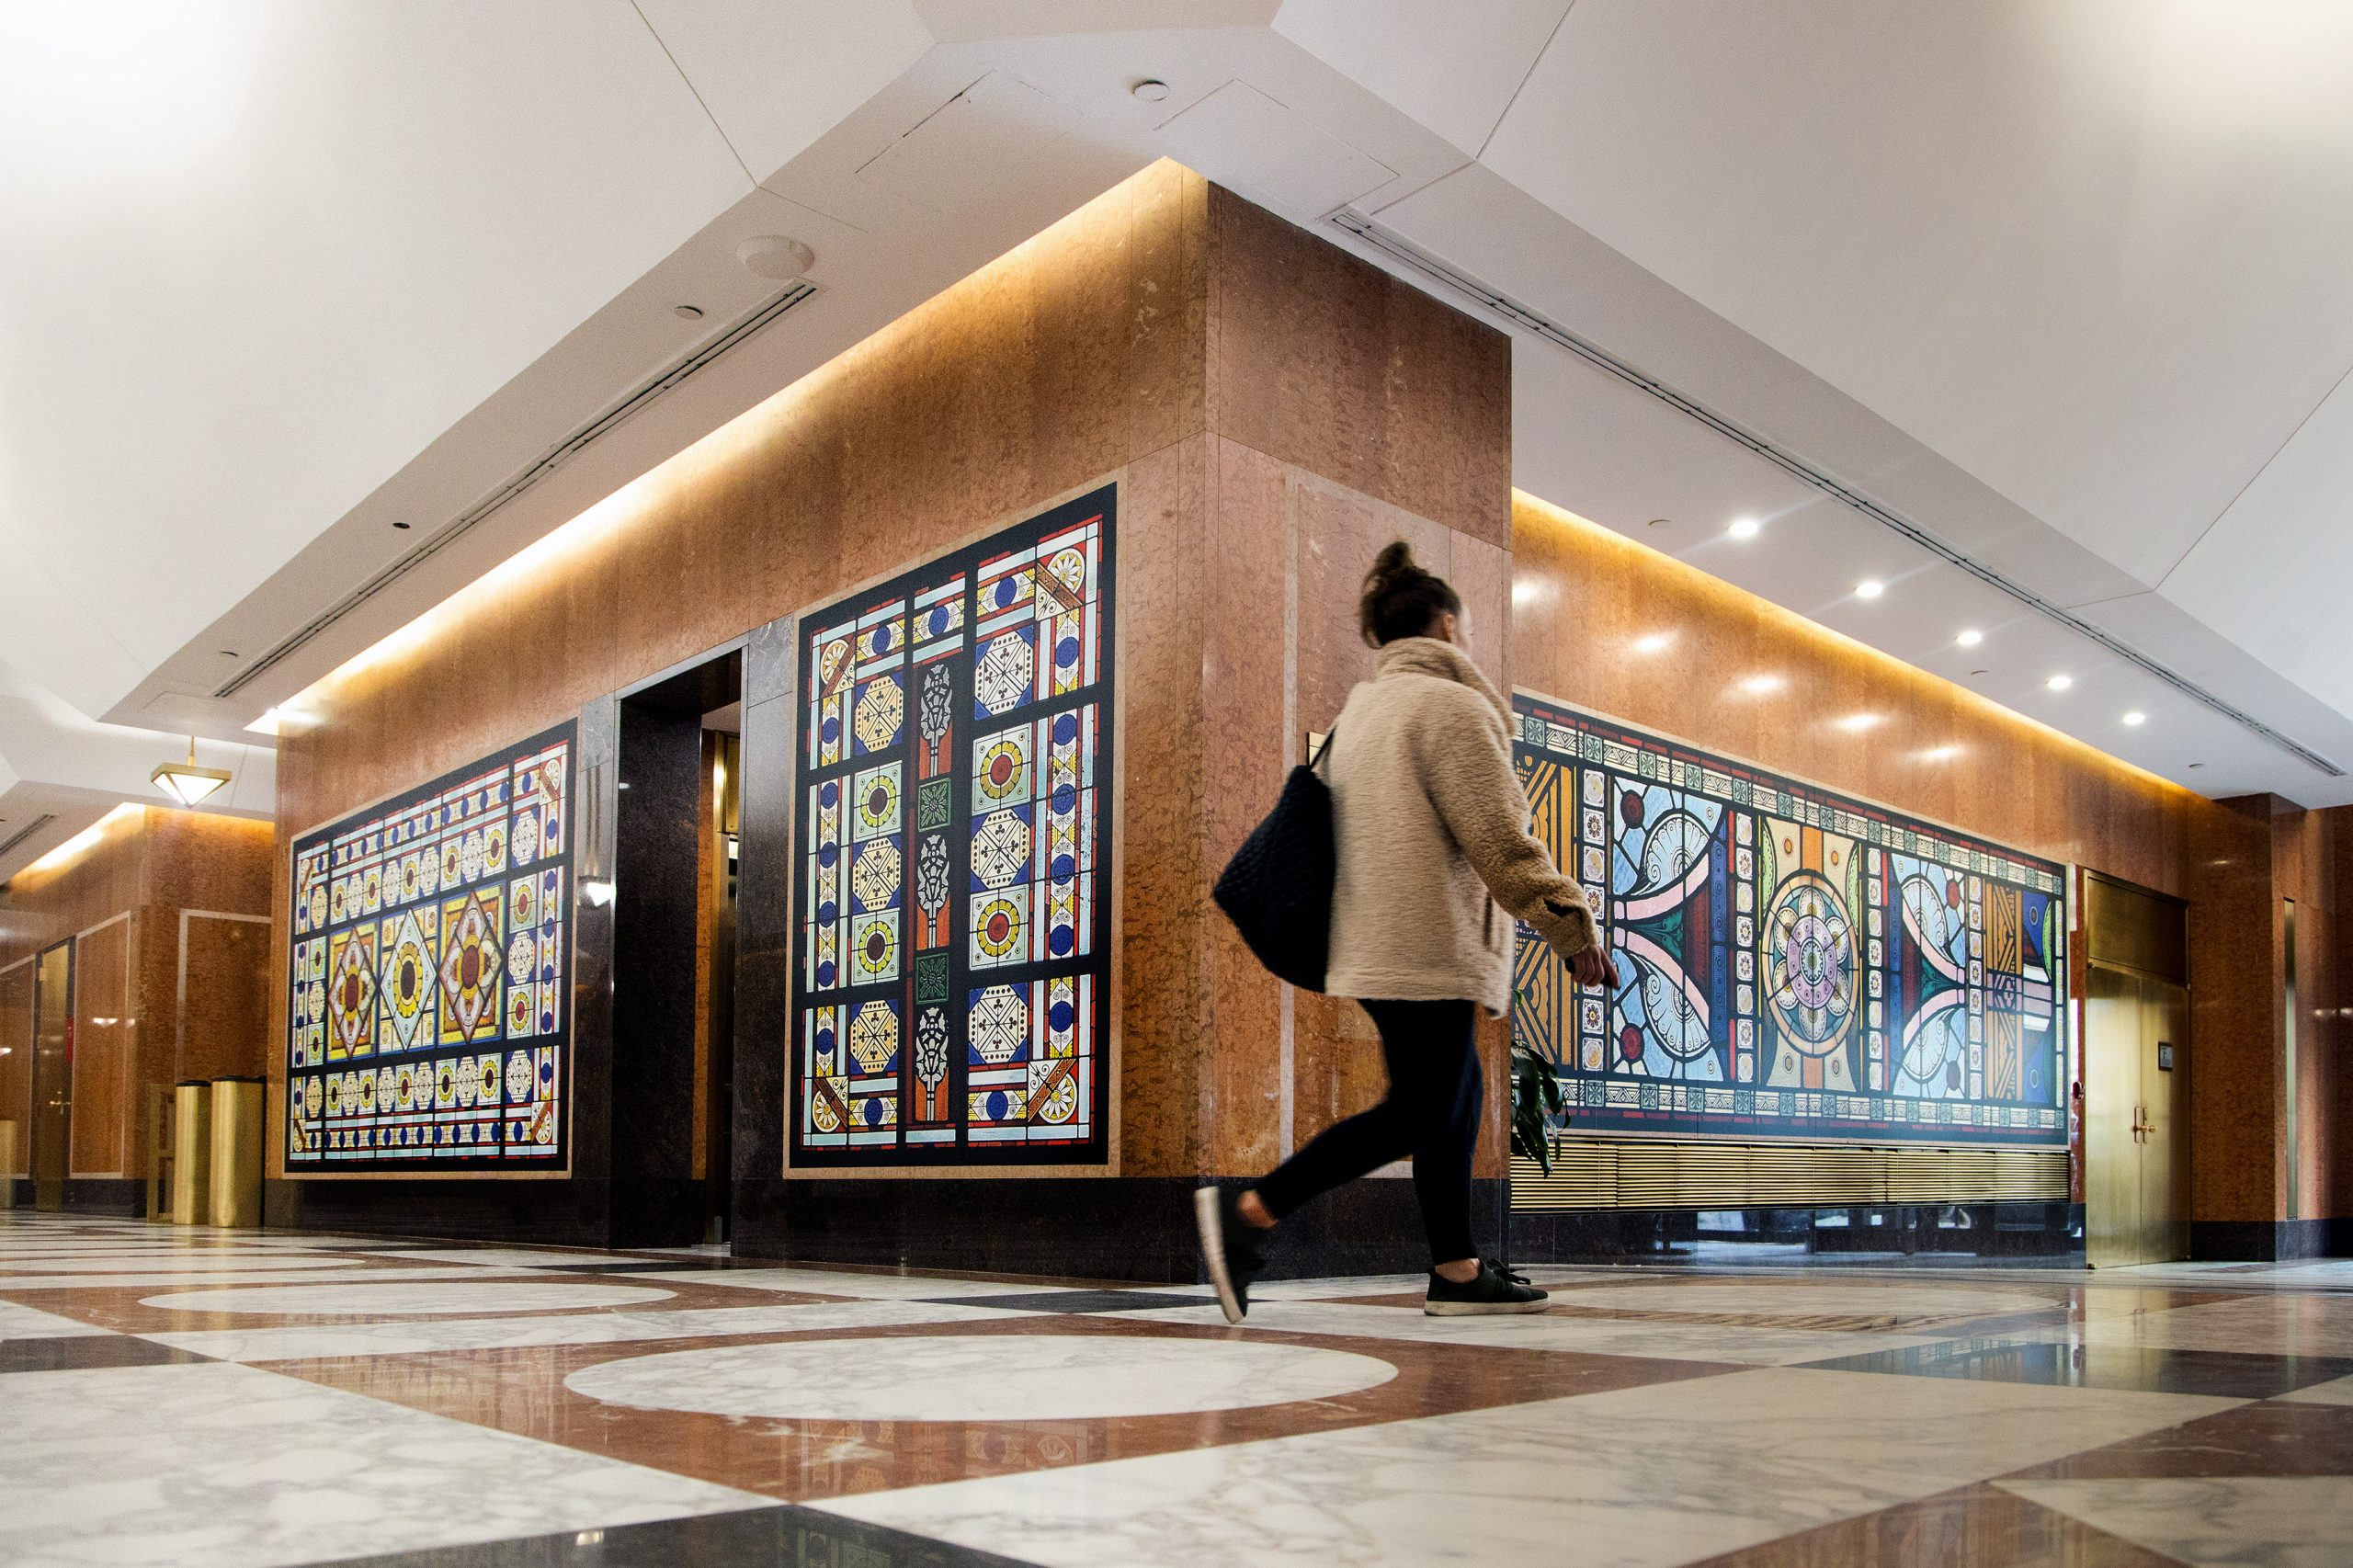 ILLUMINATION: An Interpretation of Charles Booth's Stained Glass Windows